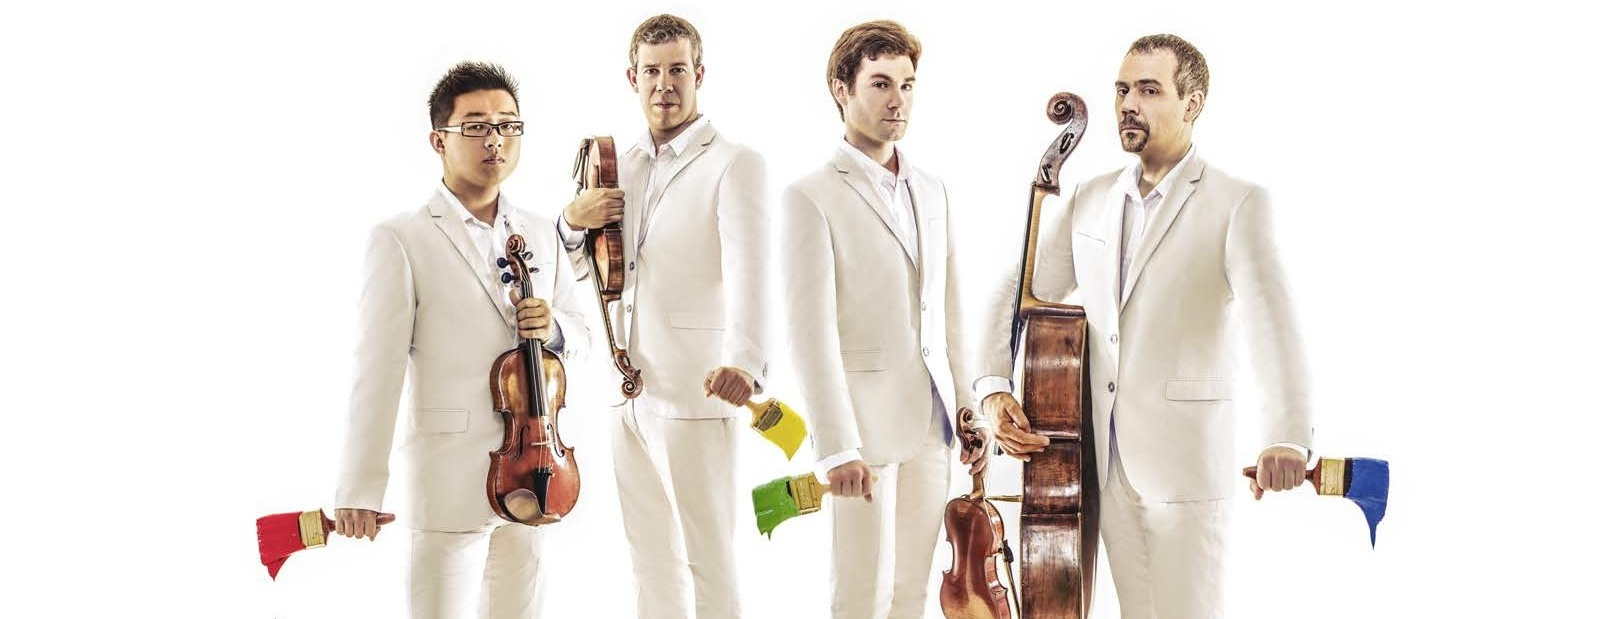 Quatuor Diotima  - Discover the story behind this picture  here